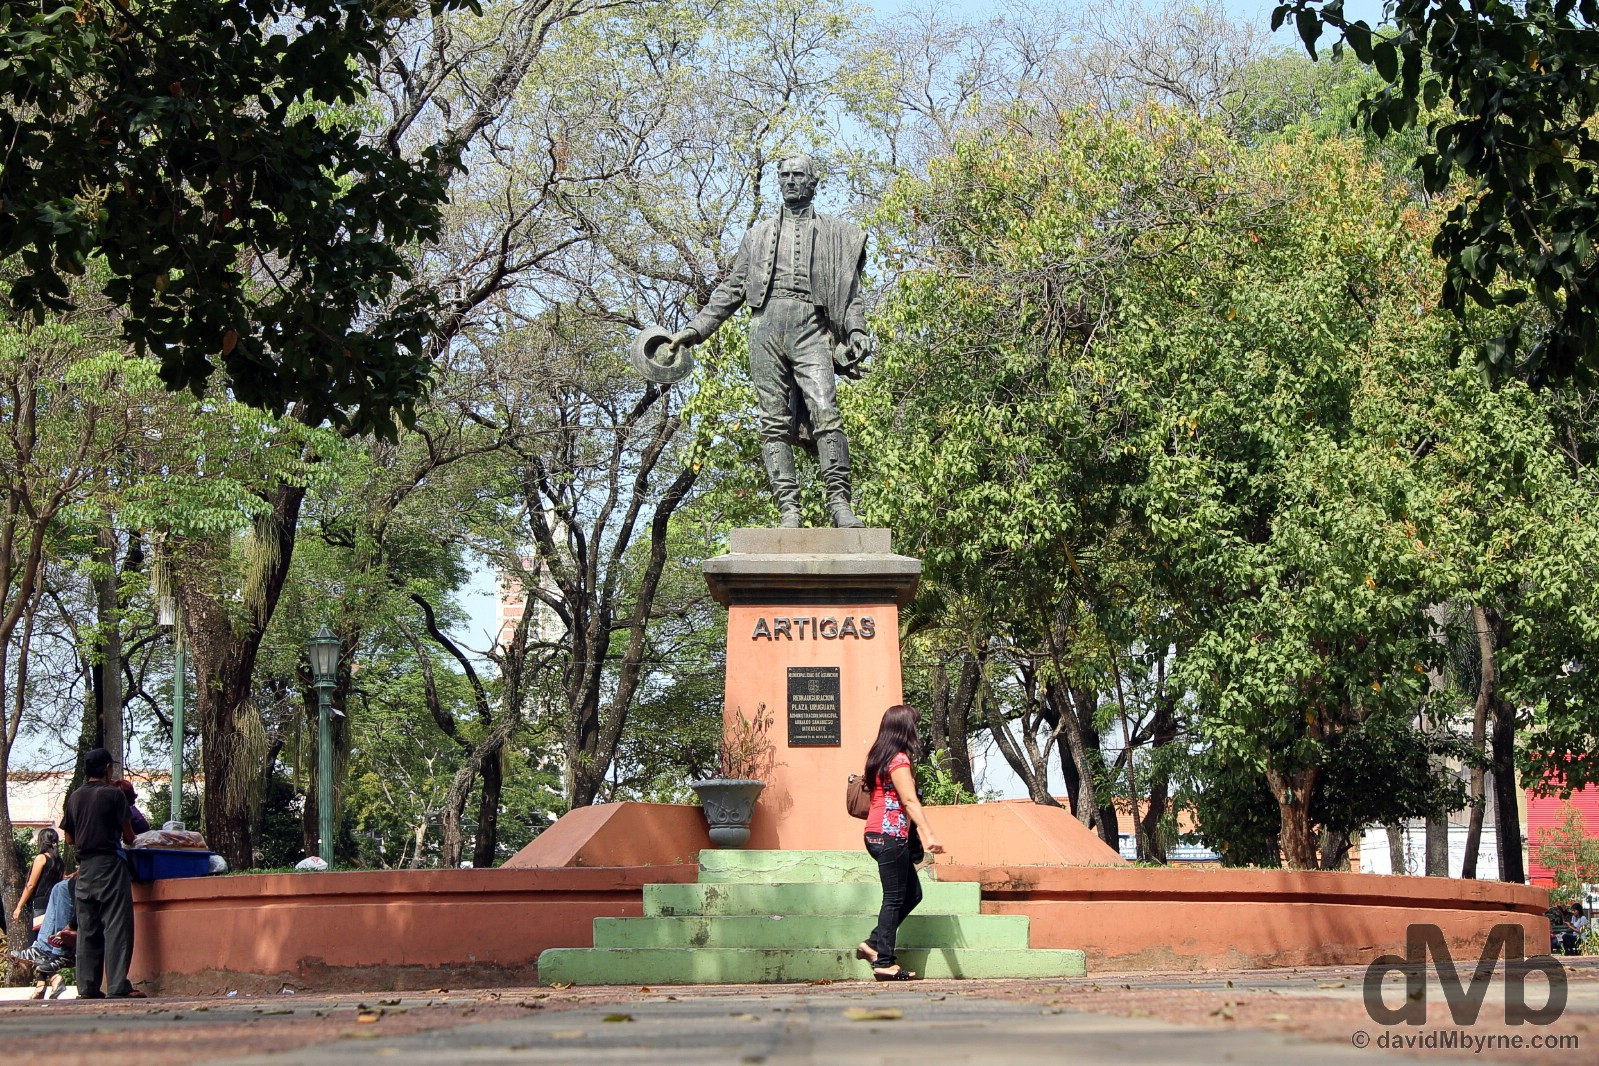 The Artigas statue Plaza Uruguaya, Asuncion, Paraguay. September 9, 2015.